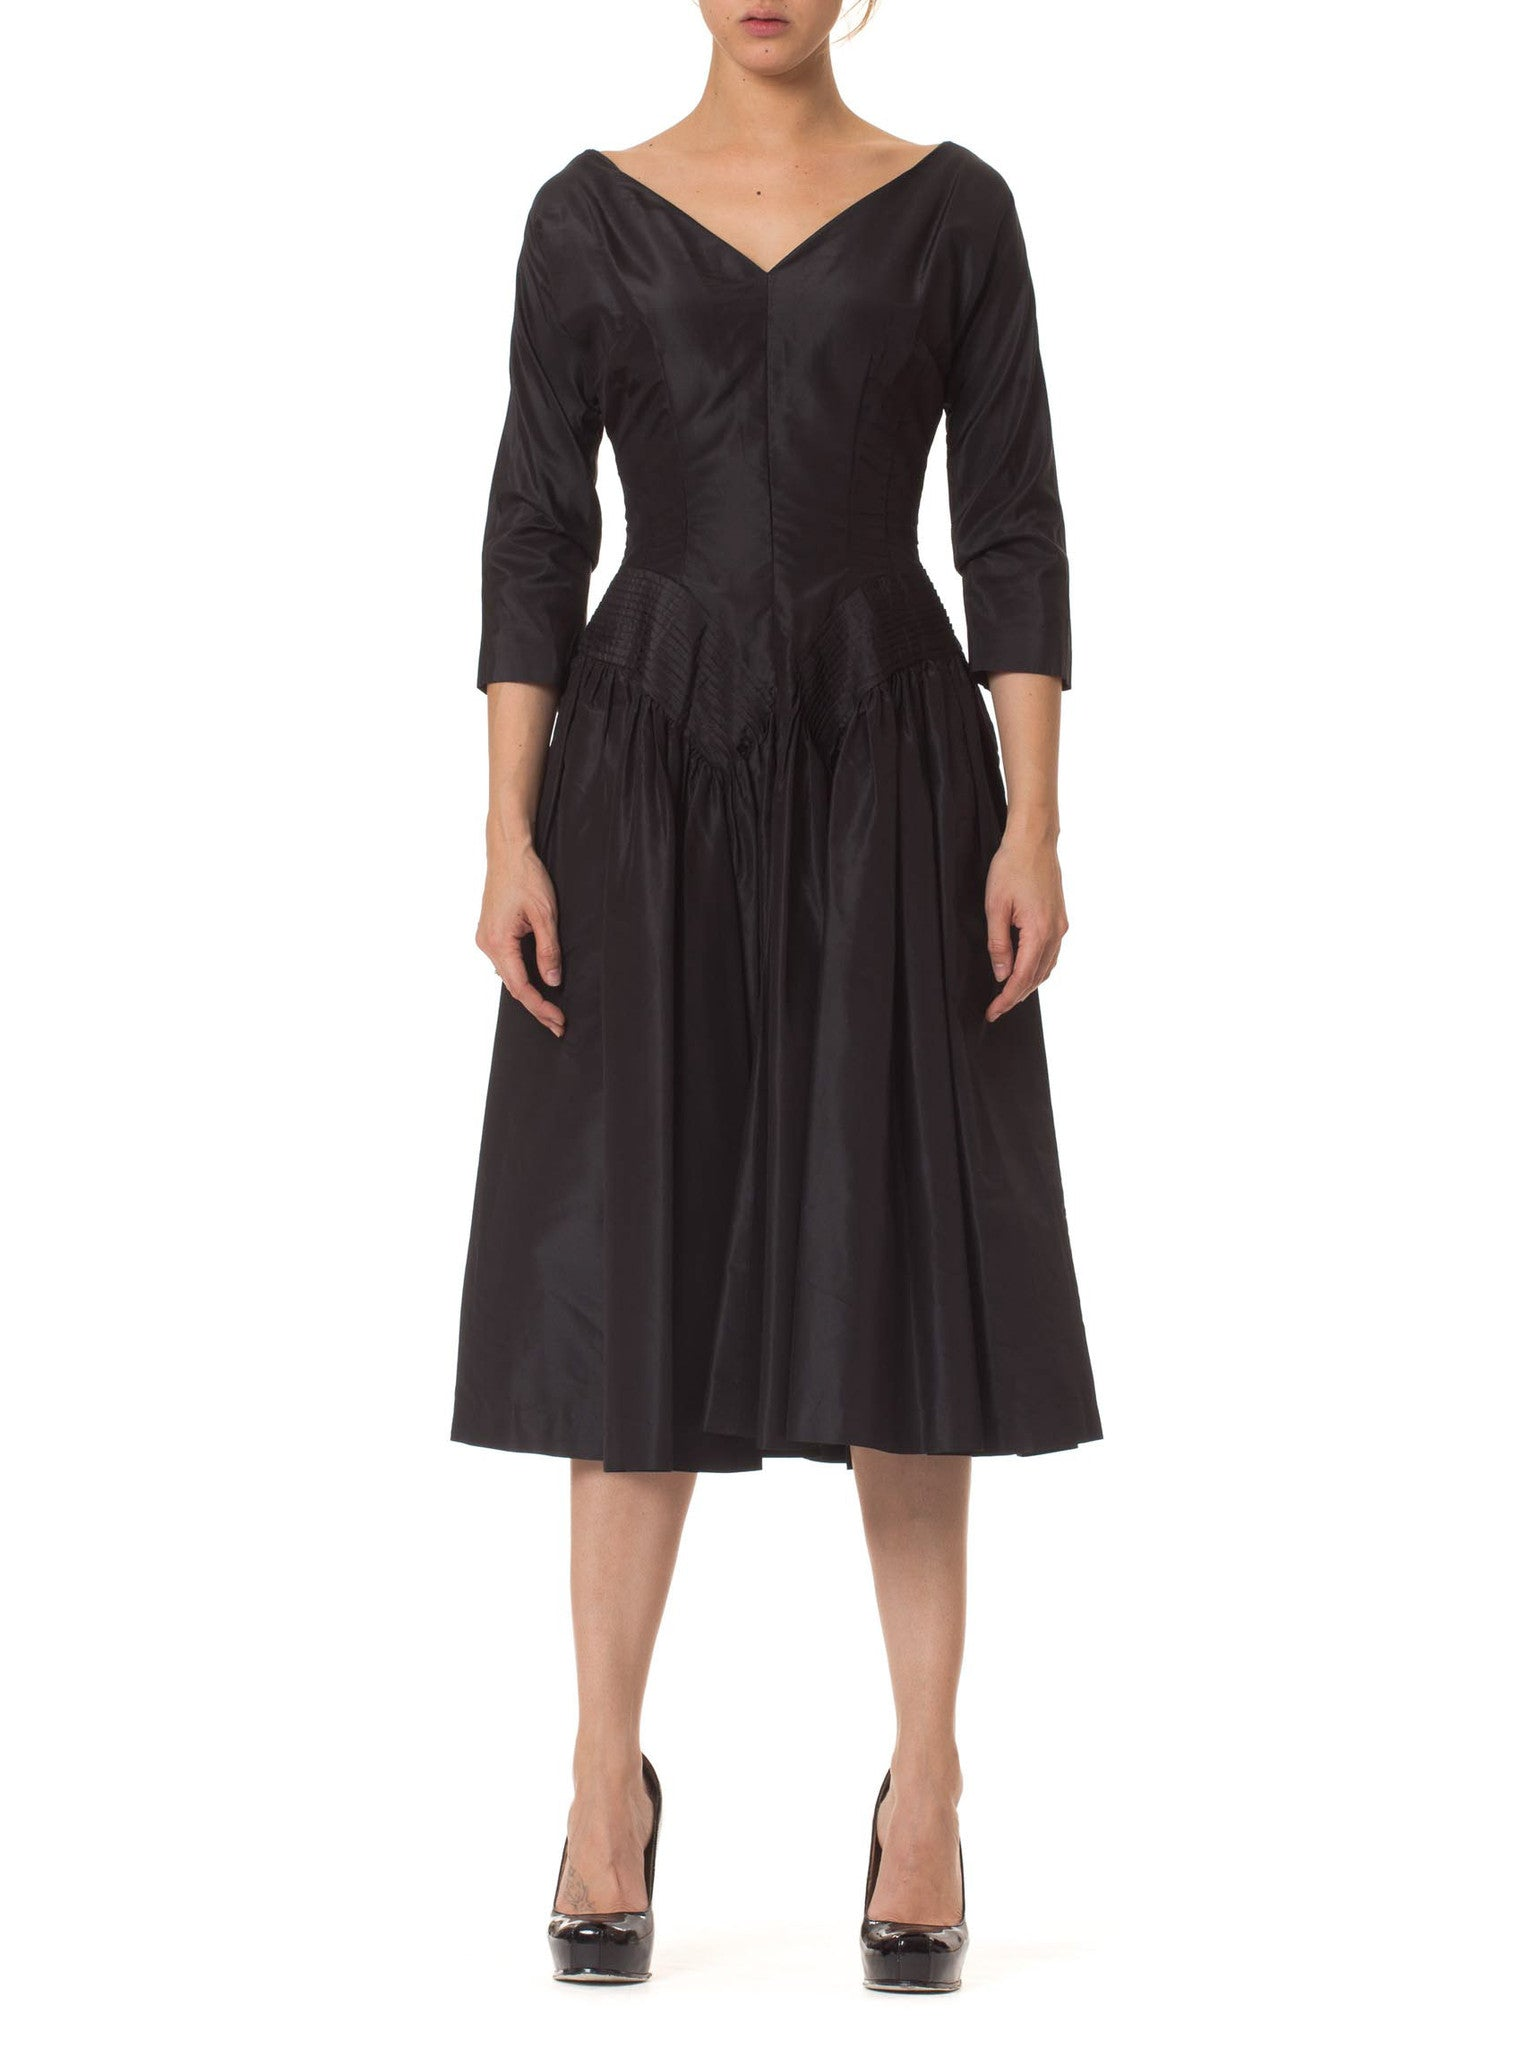 1950s New Look Dress with Pleated Hips